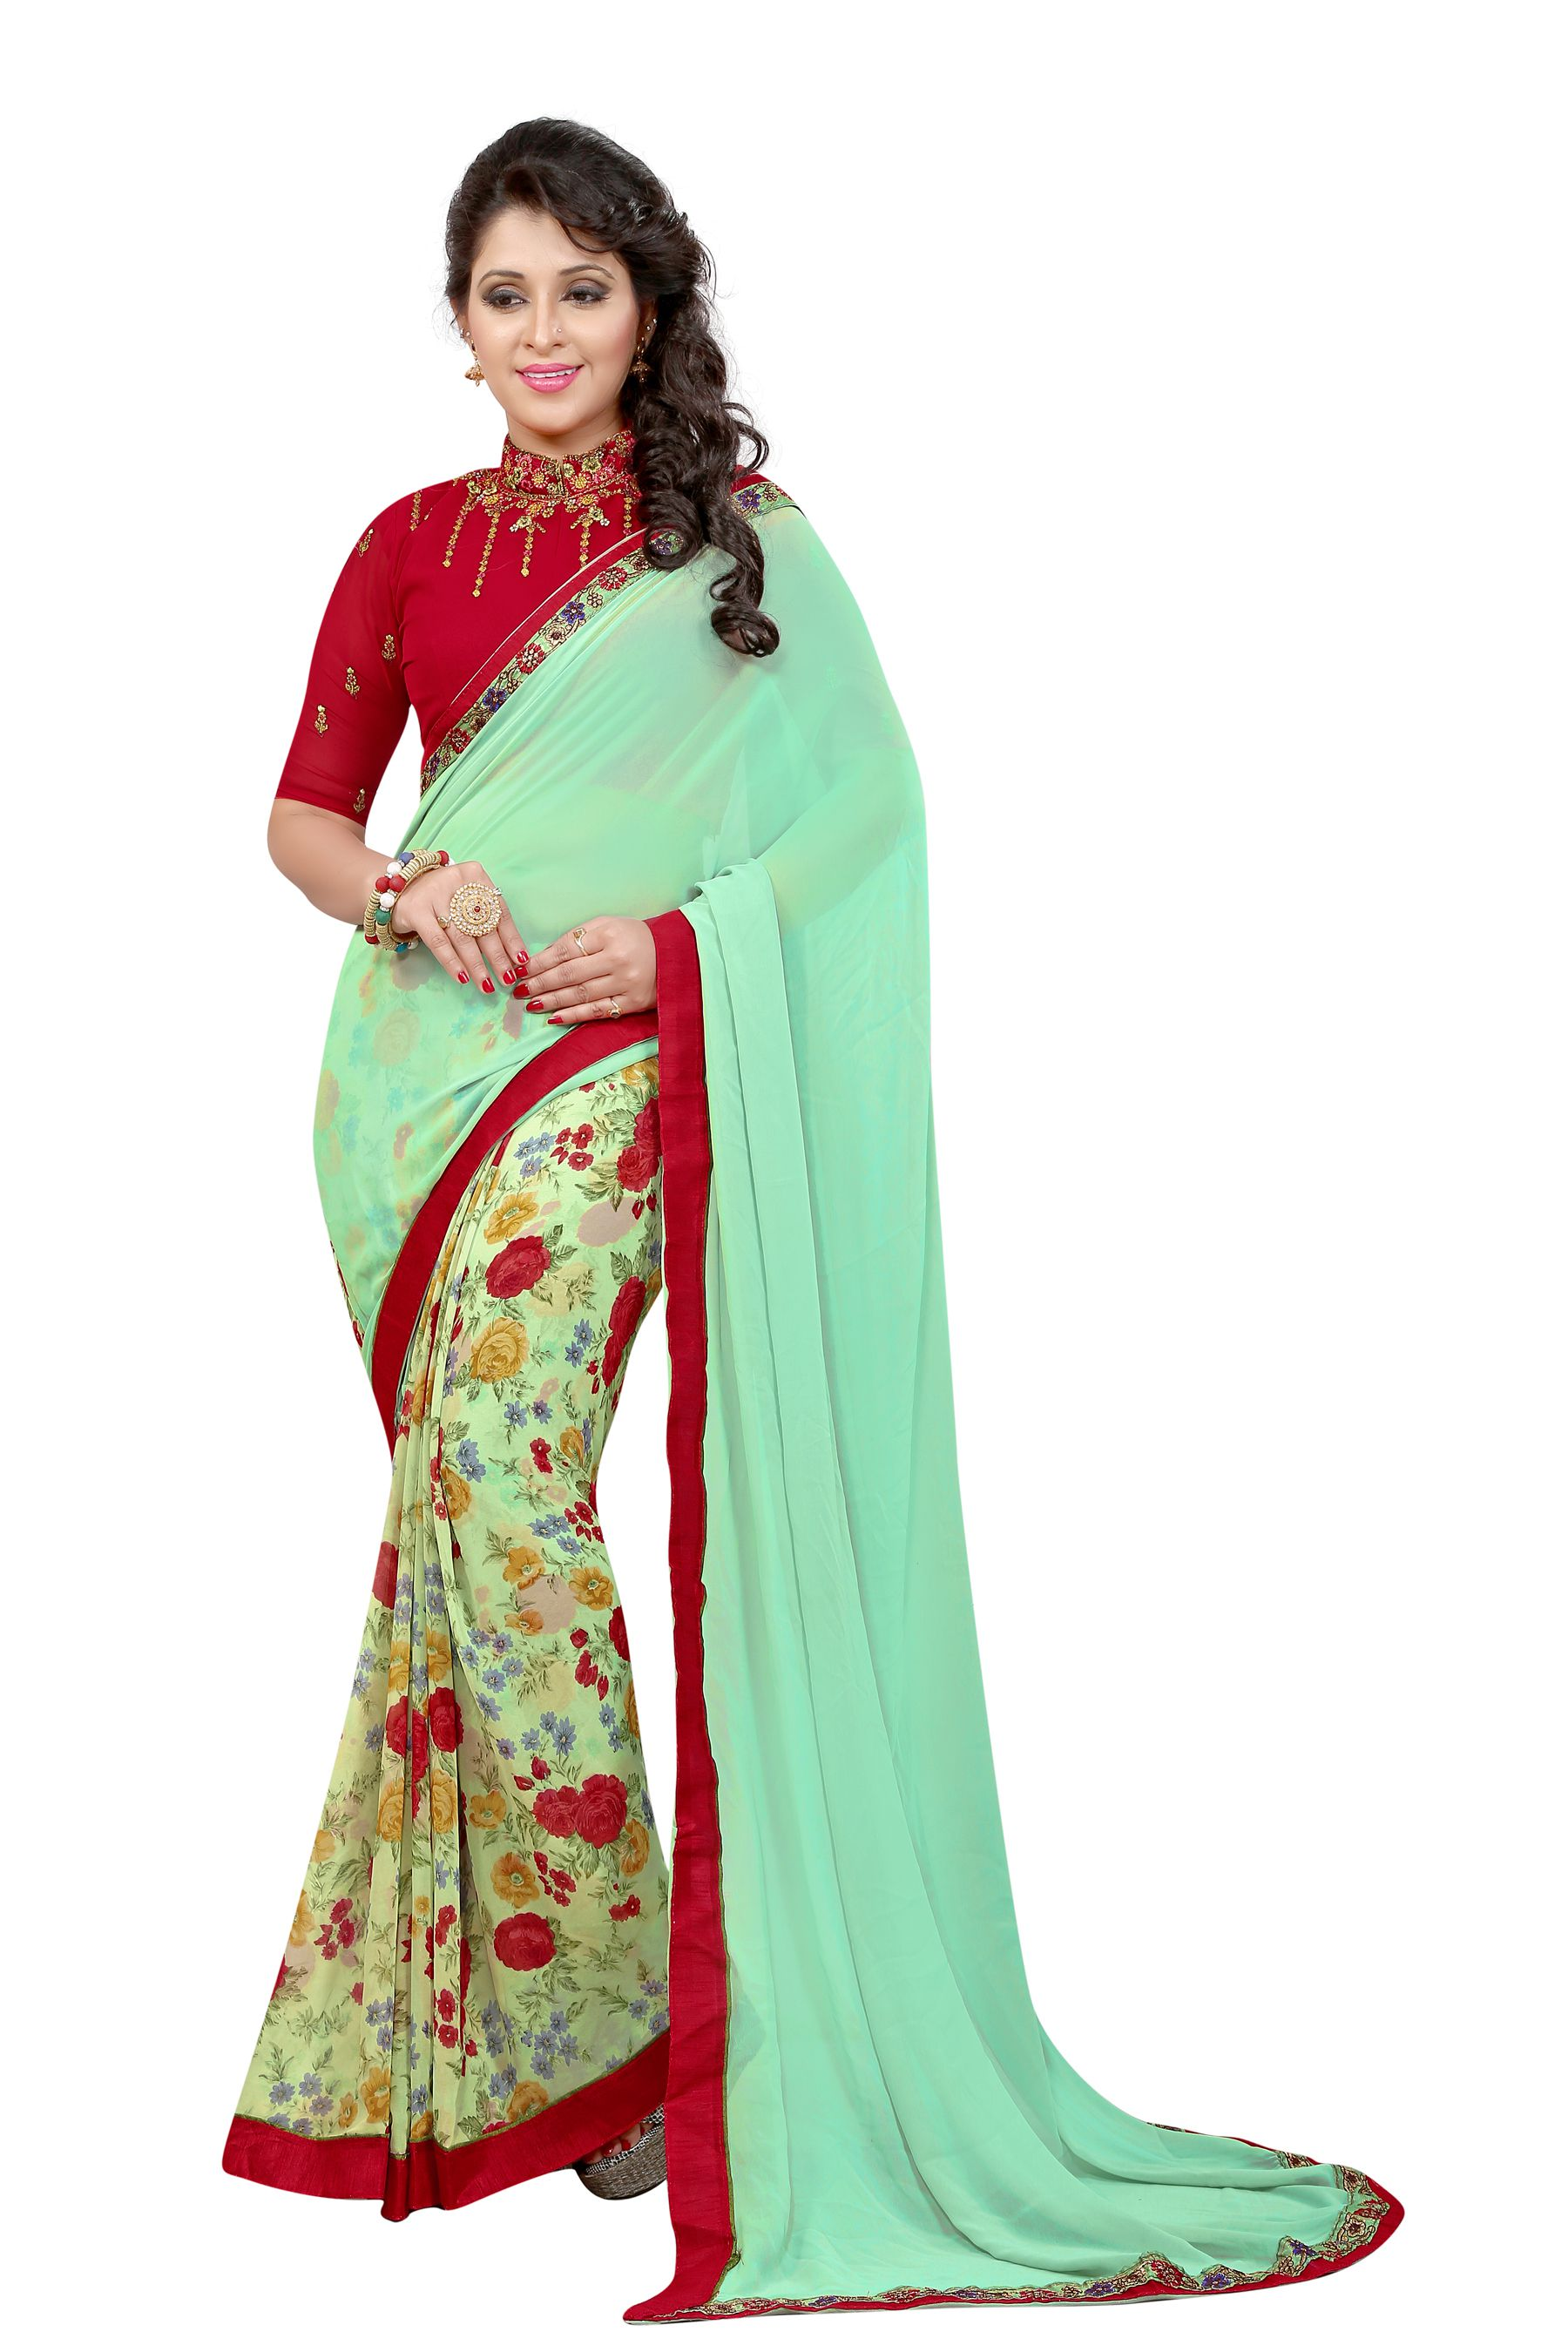 Greenvilla Designs Turquoise Georgette Saree